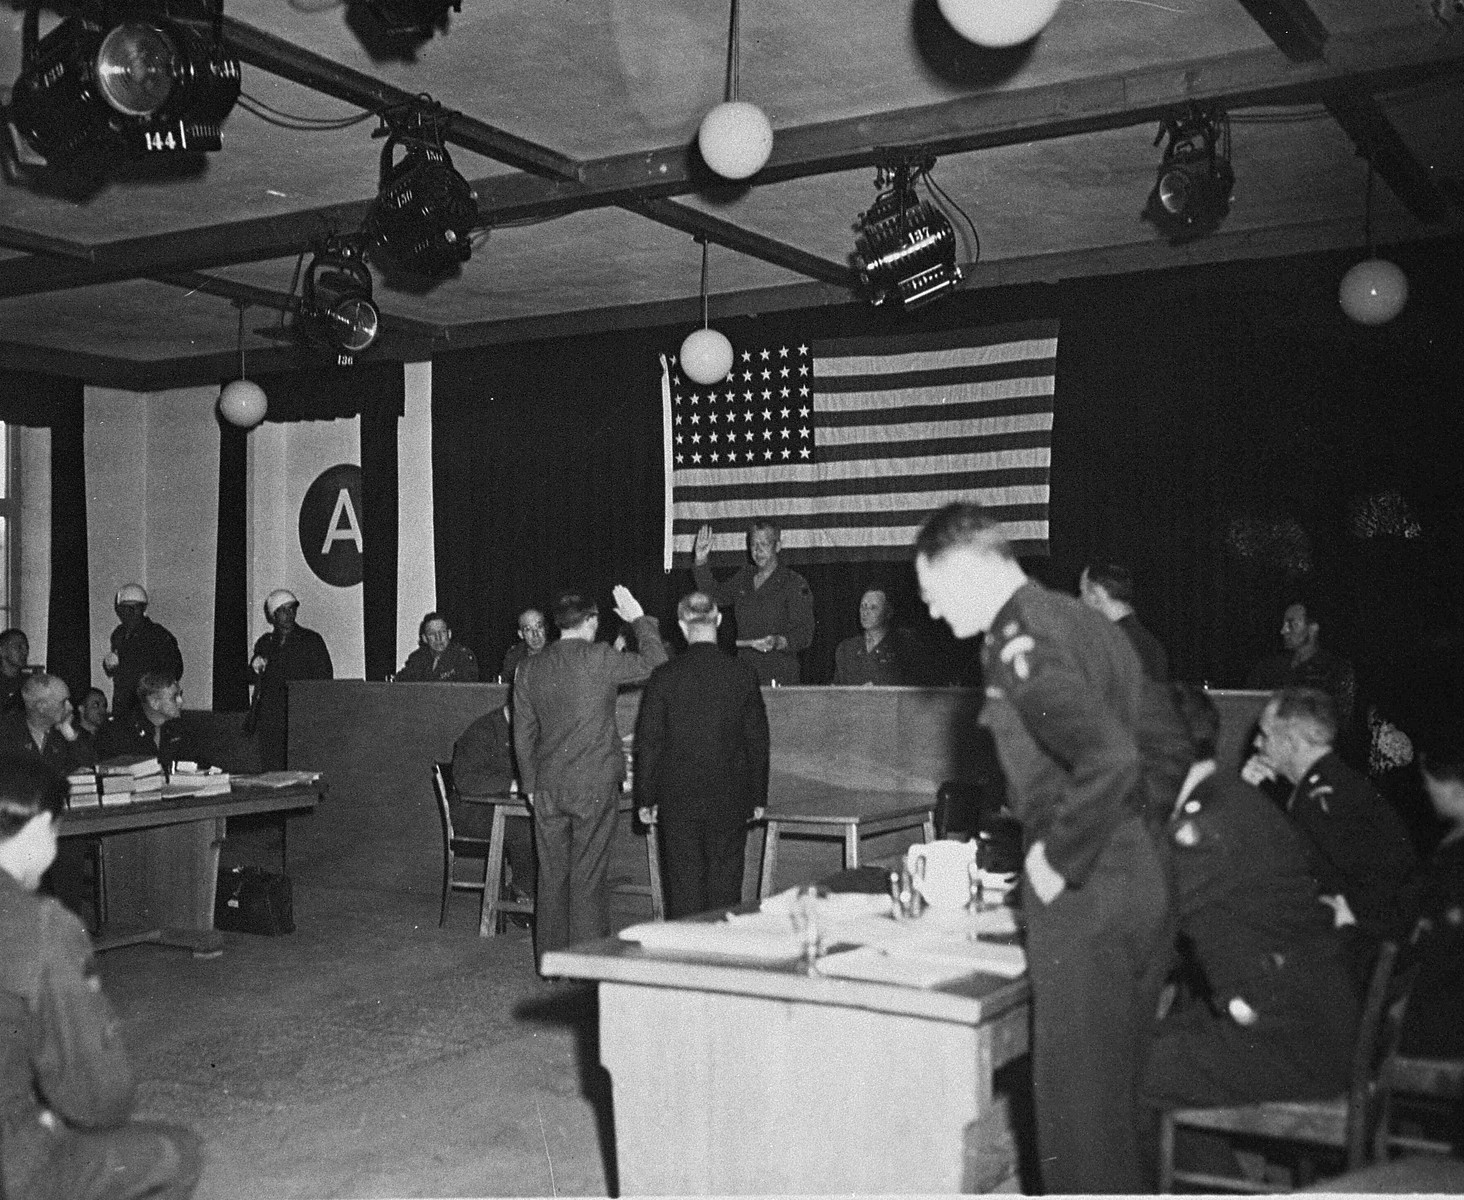 A witness is sworn in at the trial of 61 former camp personnel and prisoners from Mauthausen.  Swearing him in is Major General Fay Brink Prickett, the President of the Military Tribunal.